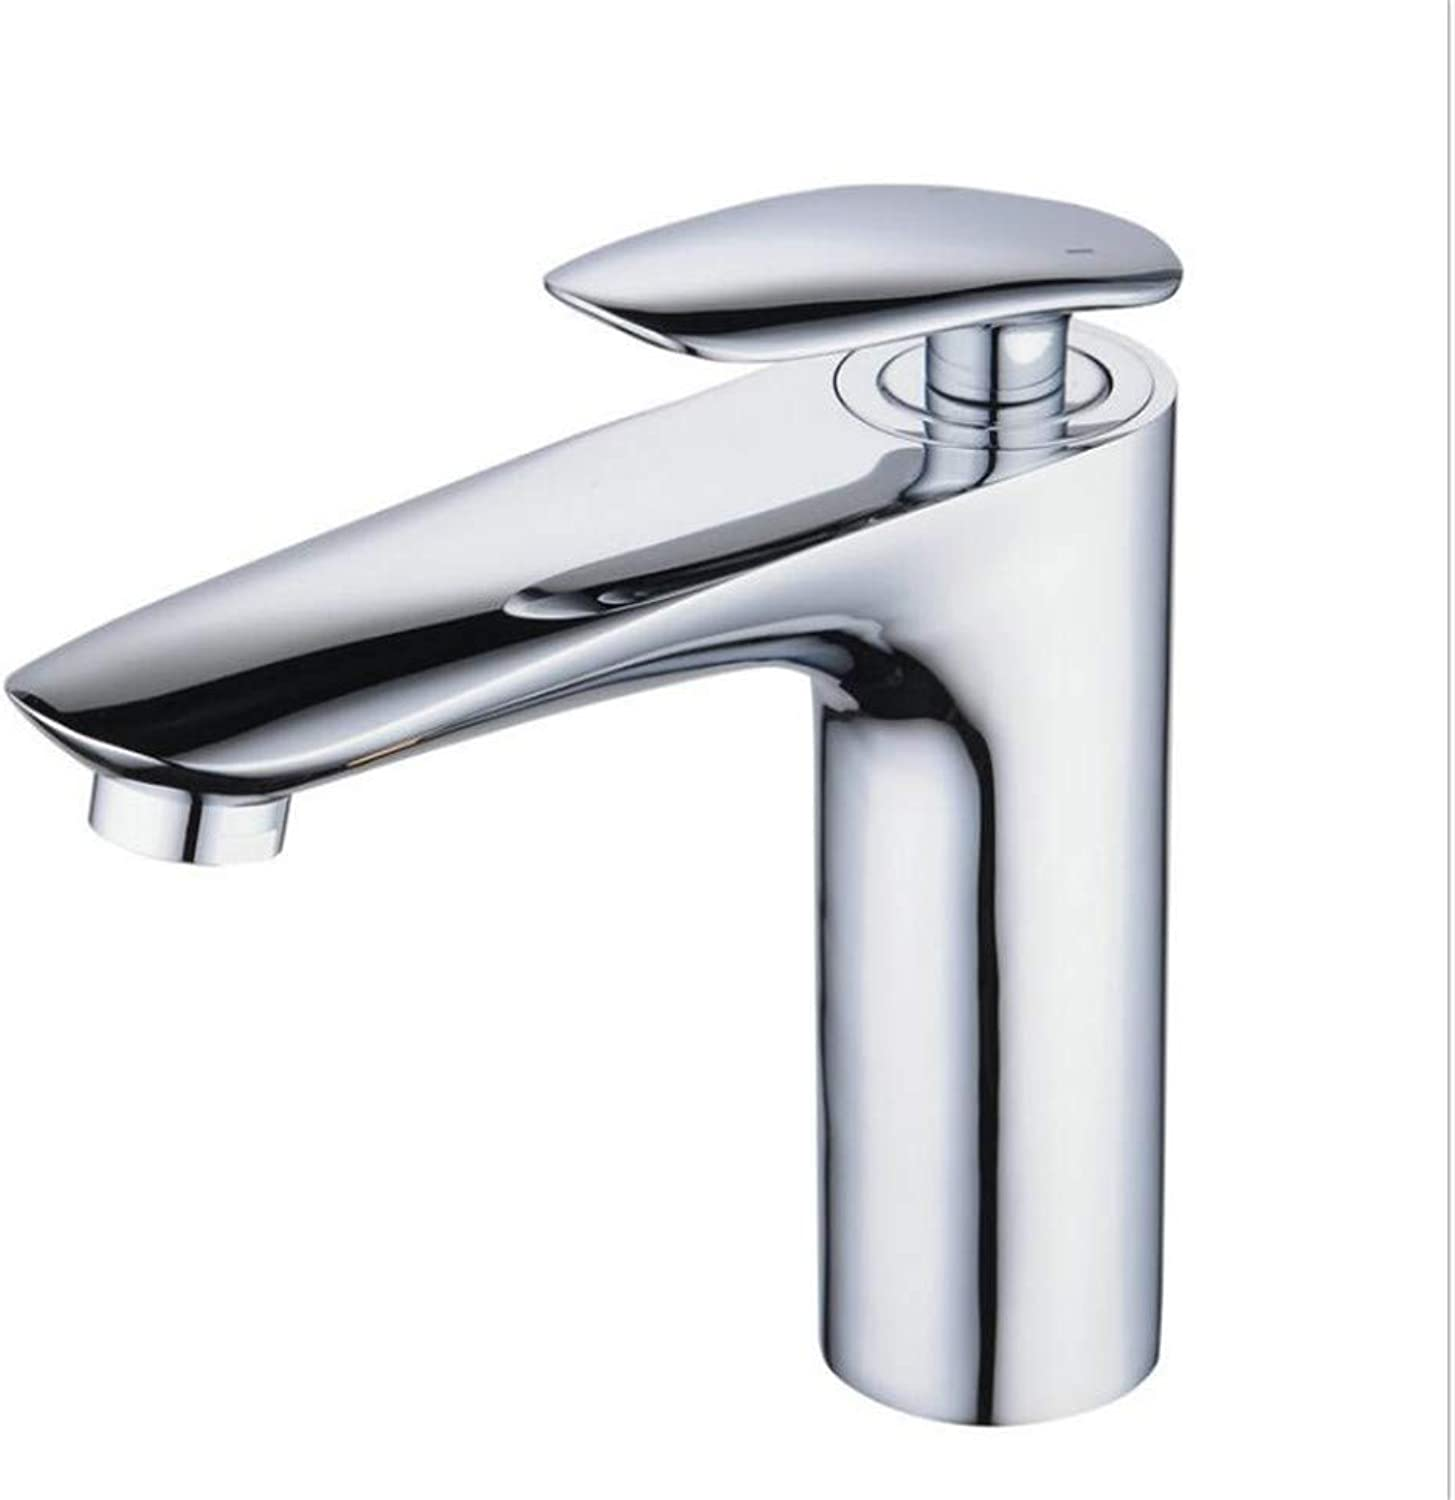 Bathroom Sink Basin Lever Mixer Tap Sanitary Warm Faucet Face Pot Faucet